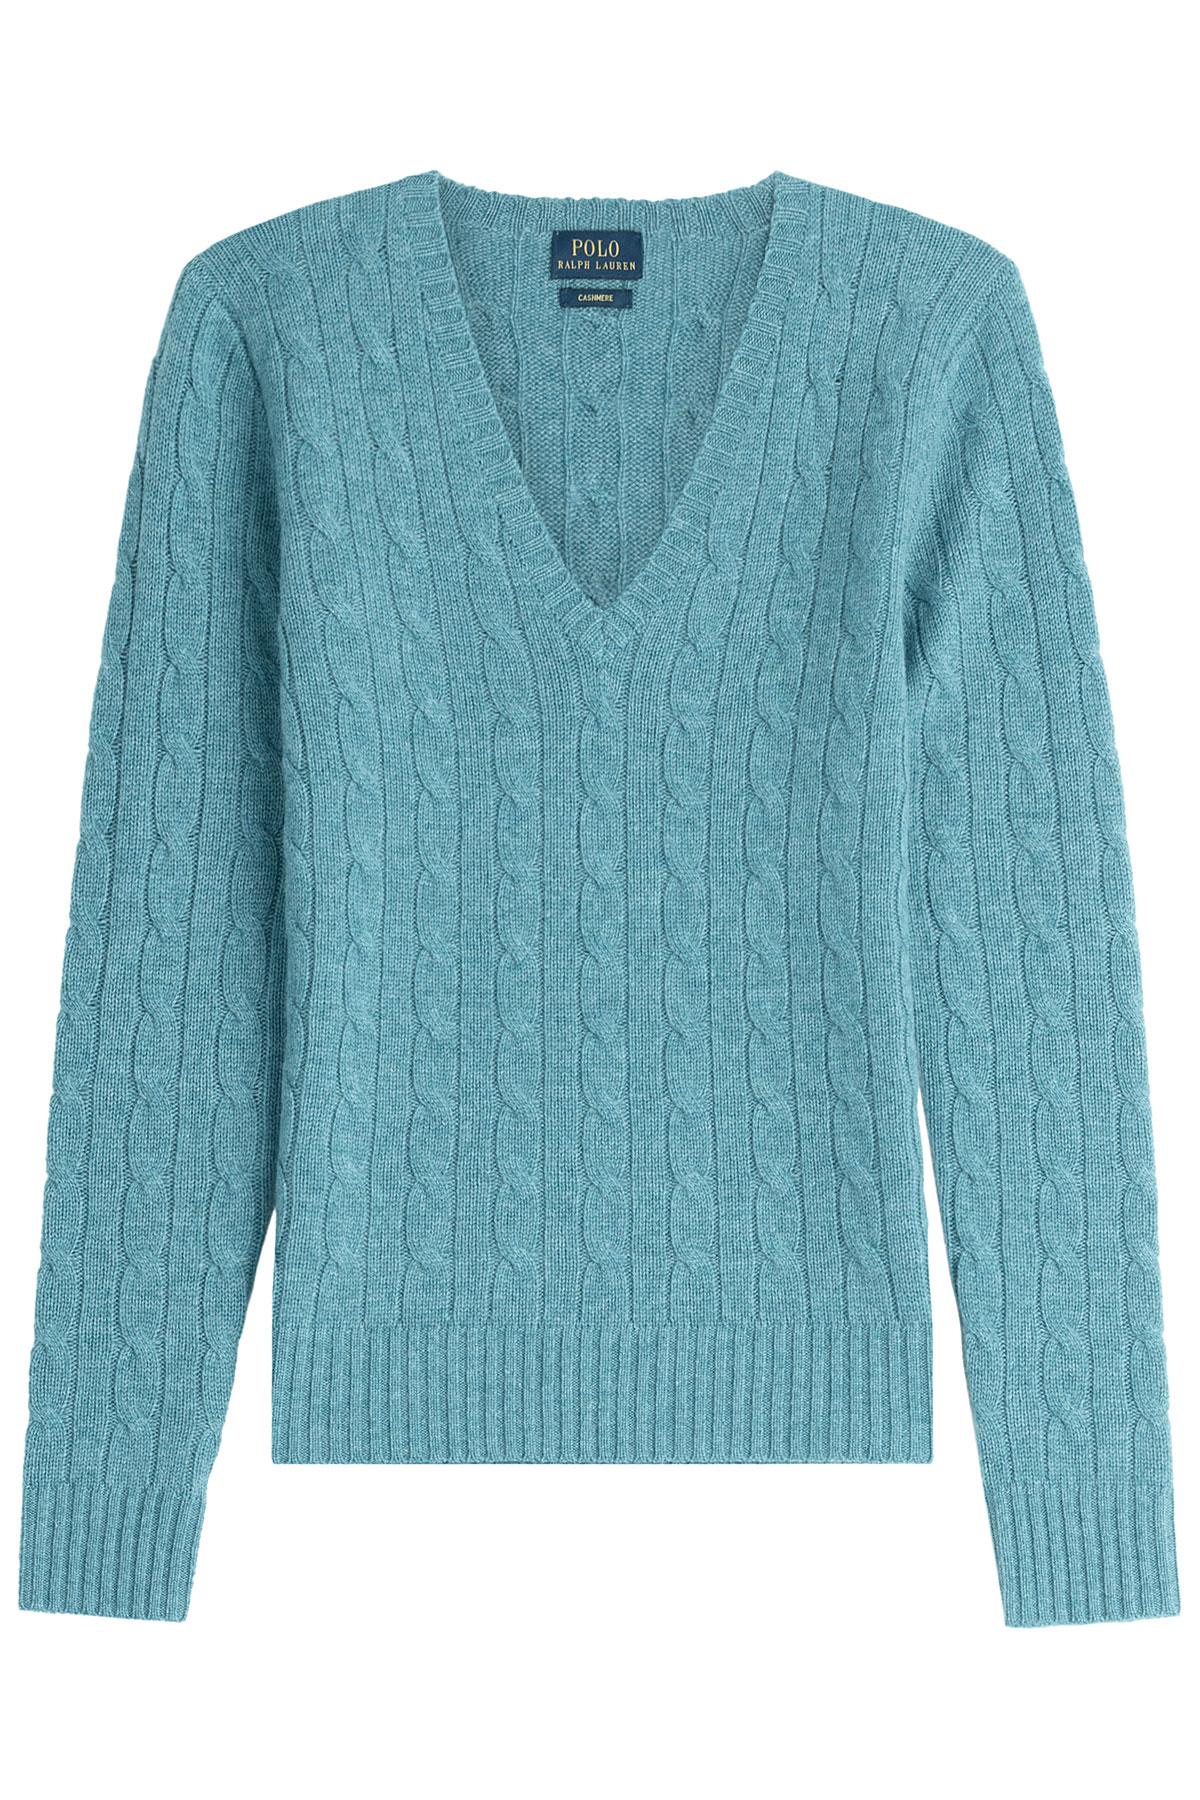 polo ralph lauren cashmere pullover turquoise in blue lyst. Black Bedroom Furniture Sets. Home Design Ideas